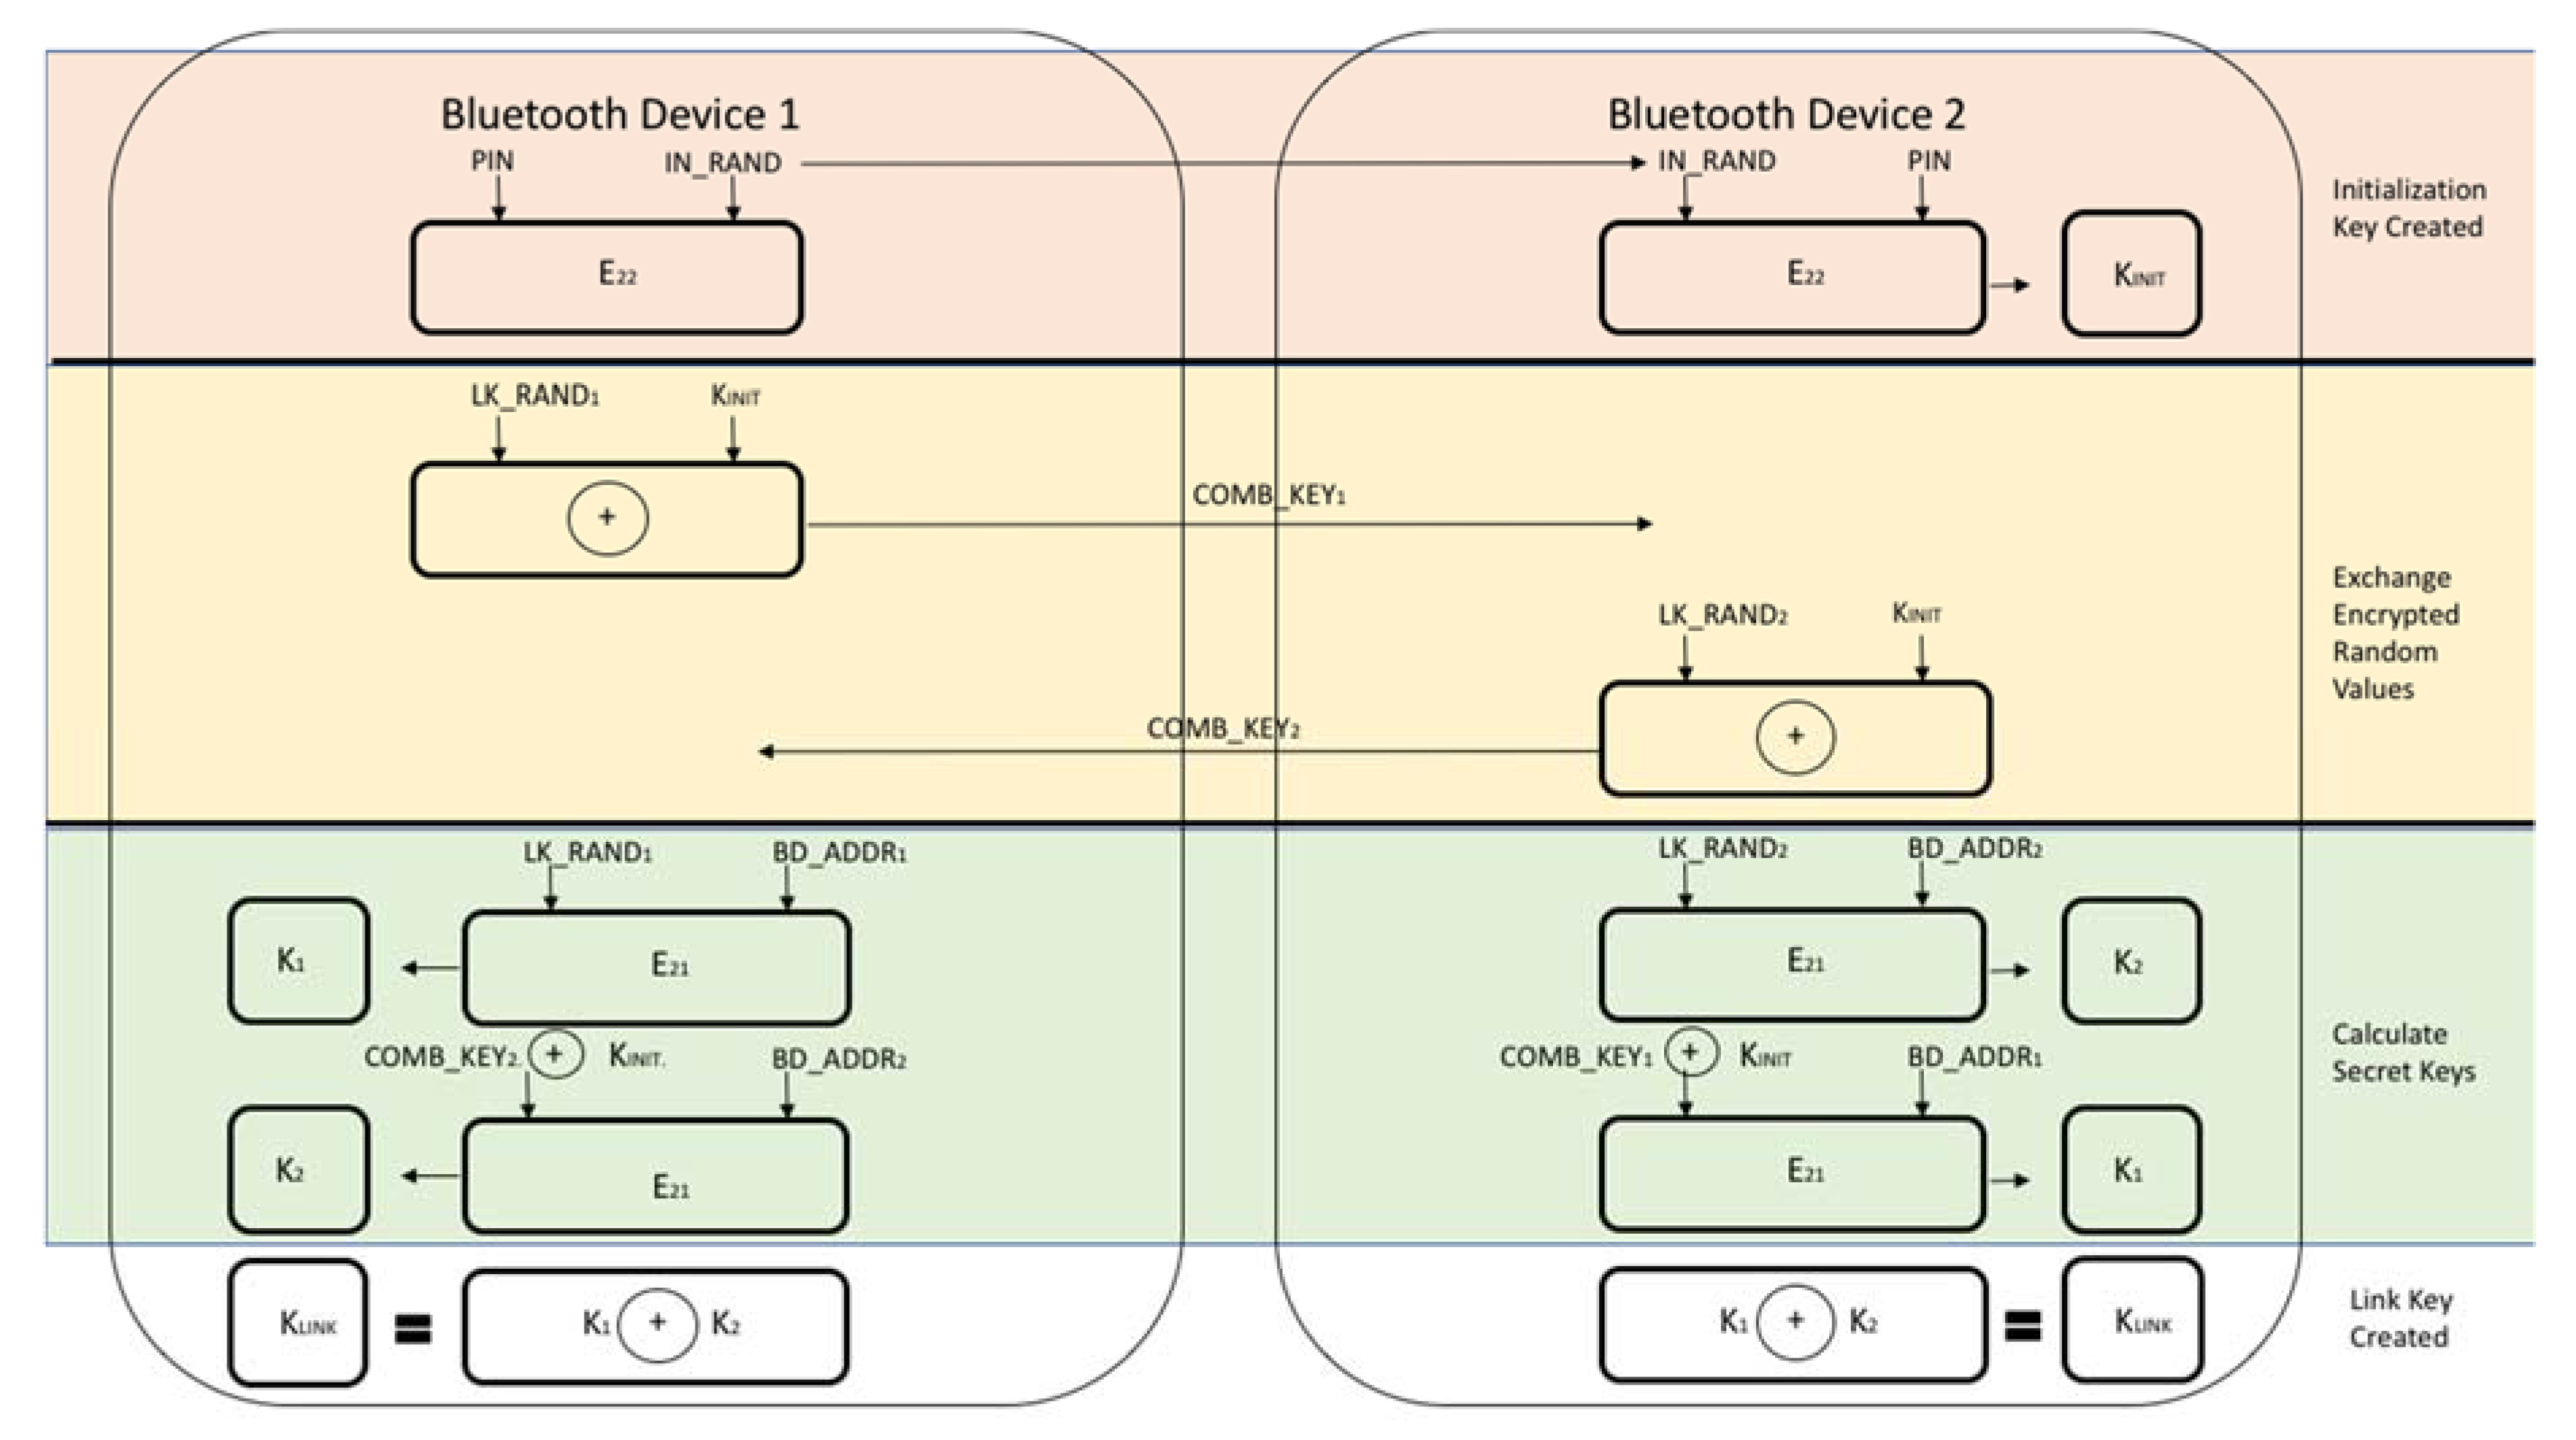 JSAN | Free Full-Text | Security Vulnerabilities in Bluetooth